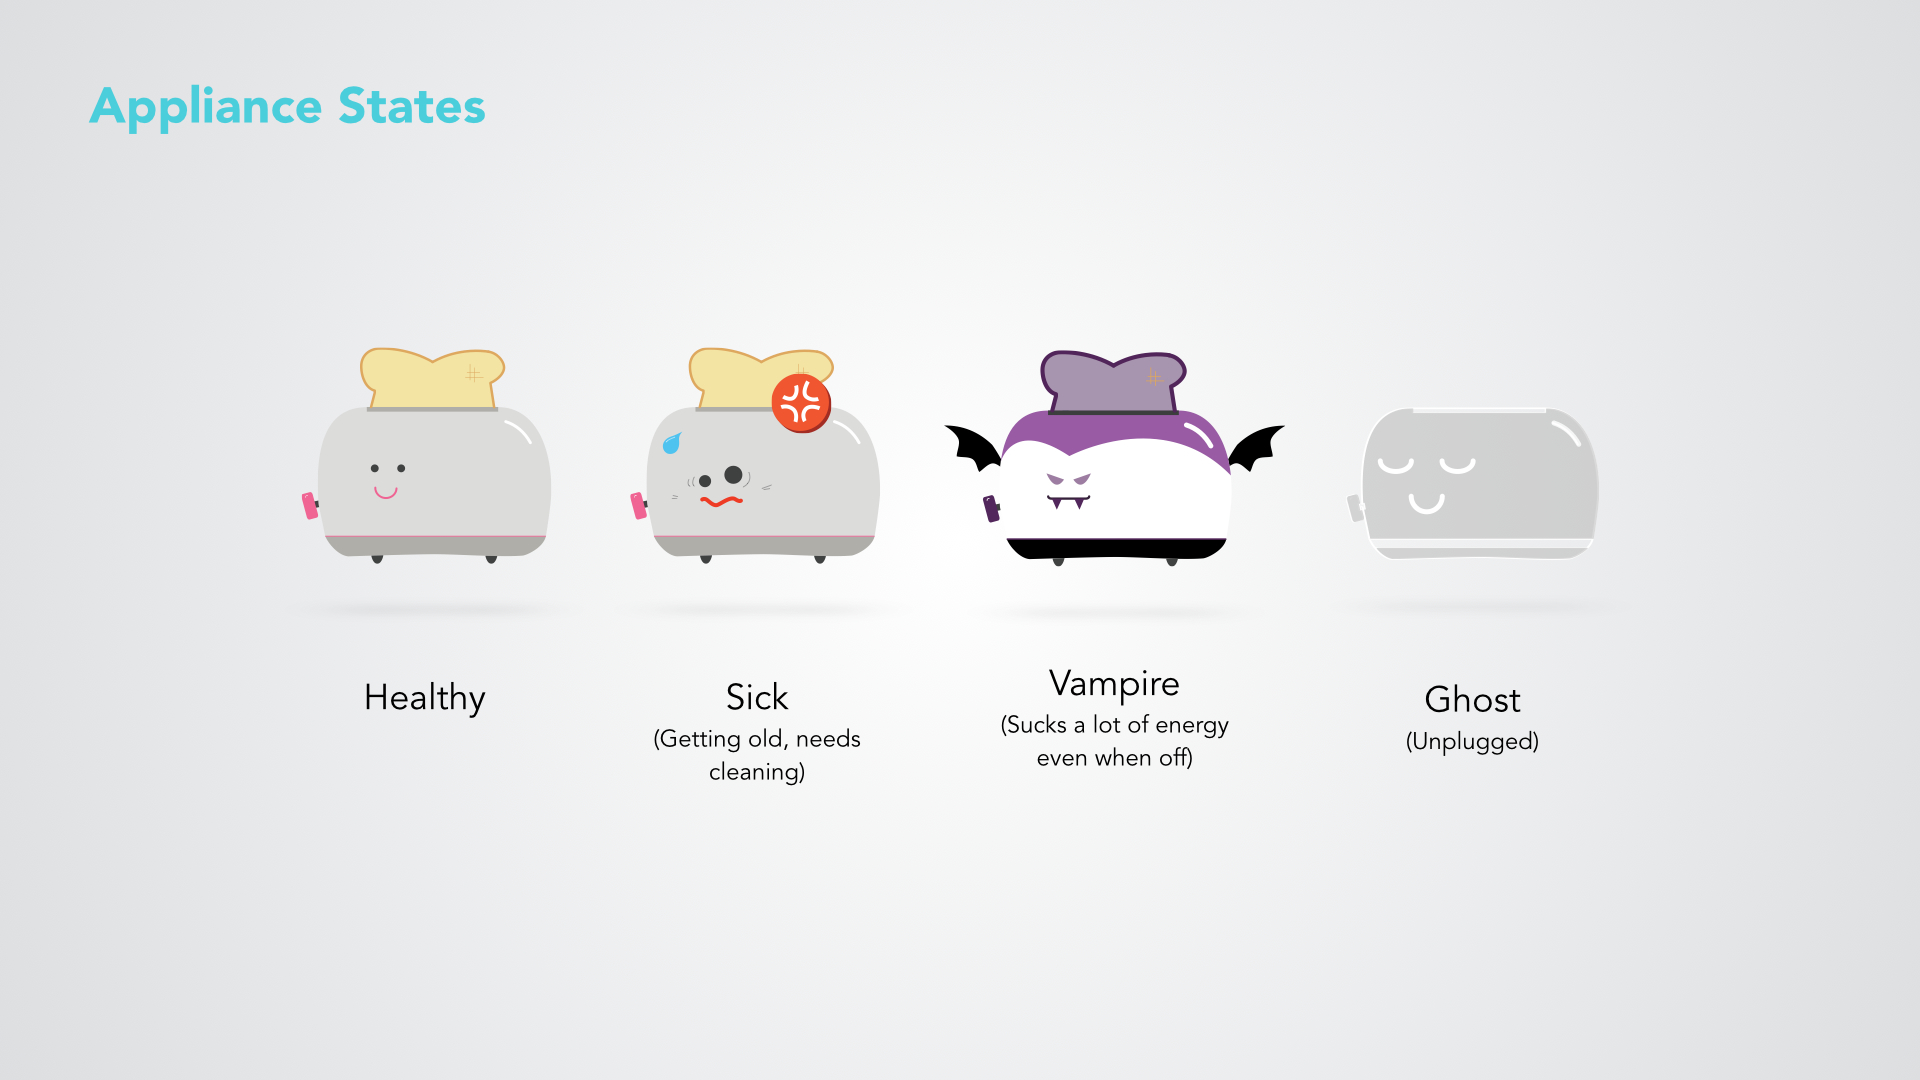 APPLIANCE STATES: One of our goals for this project was to figure out how to visually communicate the health of an appliance at first glance. We came up with four common states - health, sick, vampire, and ghost - and took inspiration from anime and cartoon drawings in expressing those conditions.